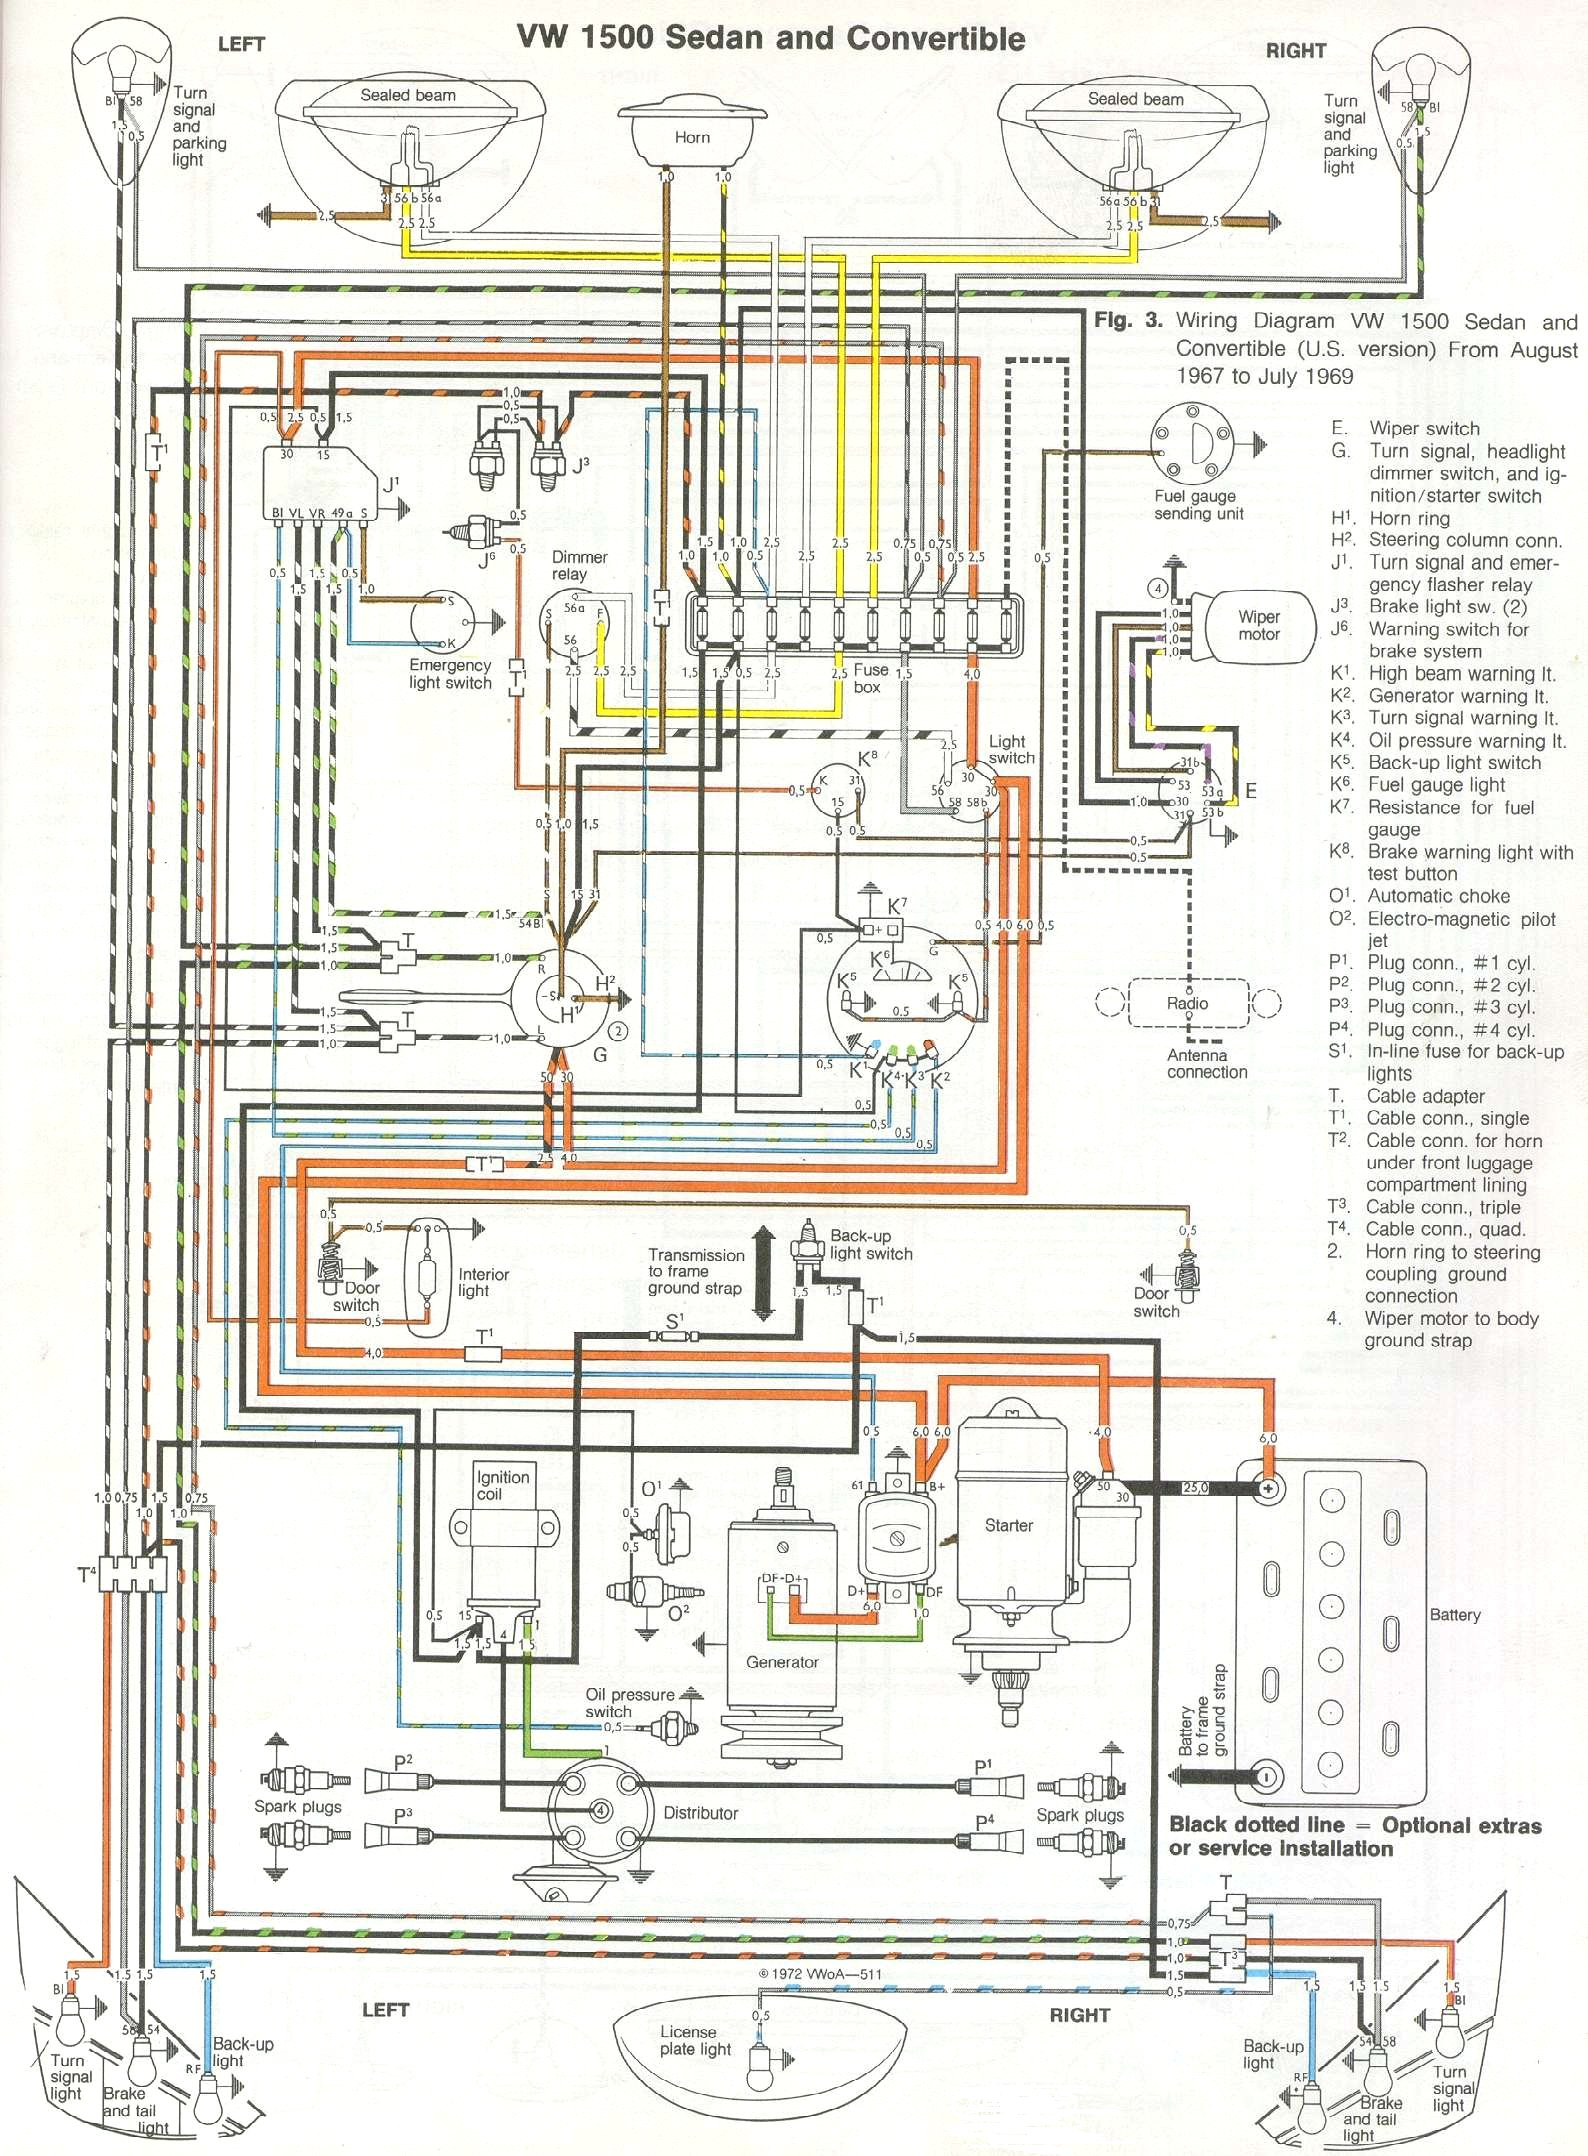 71 vw beetle wire diagram auto electrical wiring diagram 1964 vw bug wiring  71 vw beetle